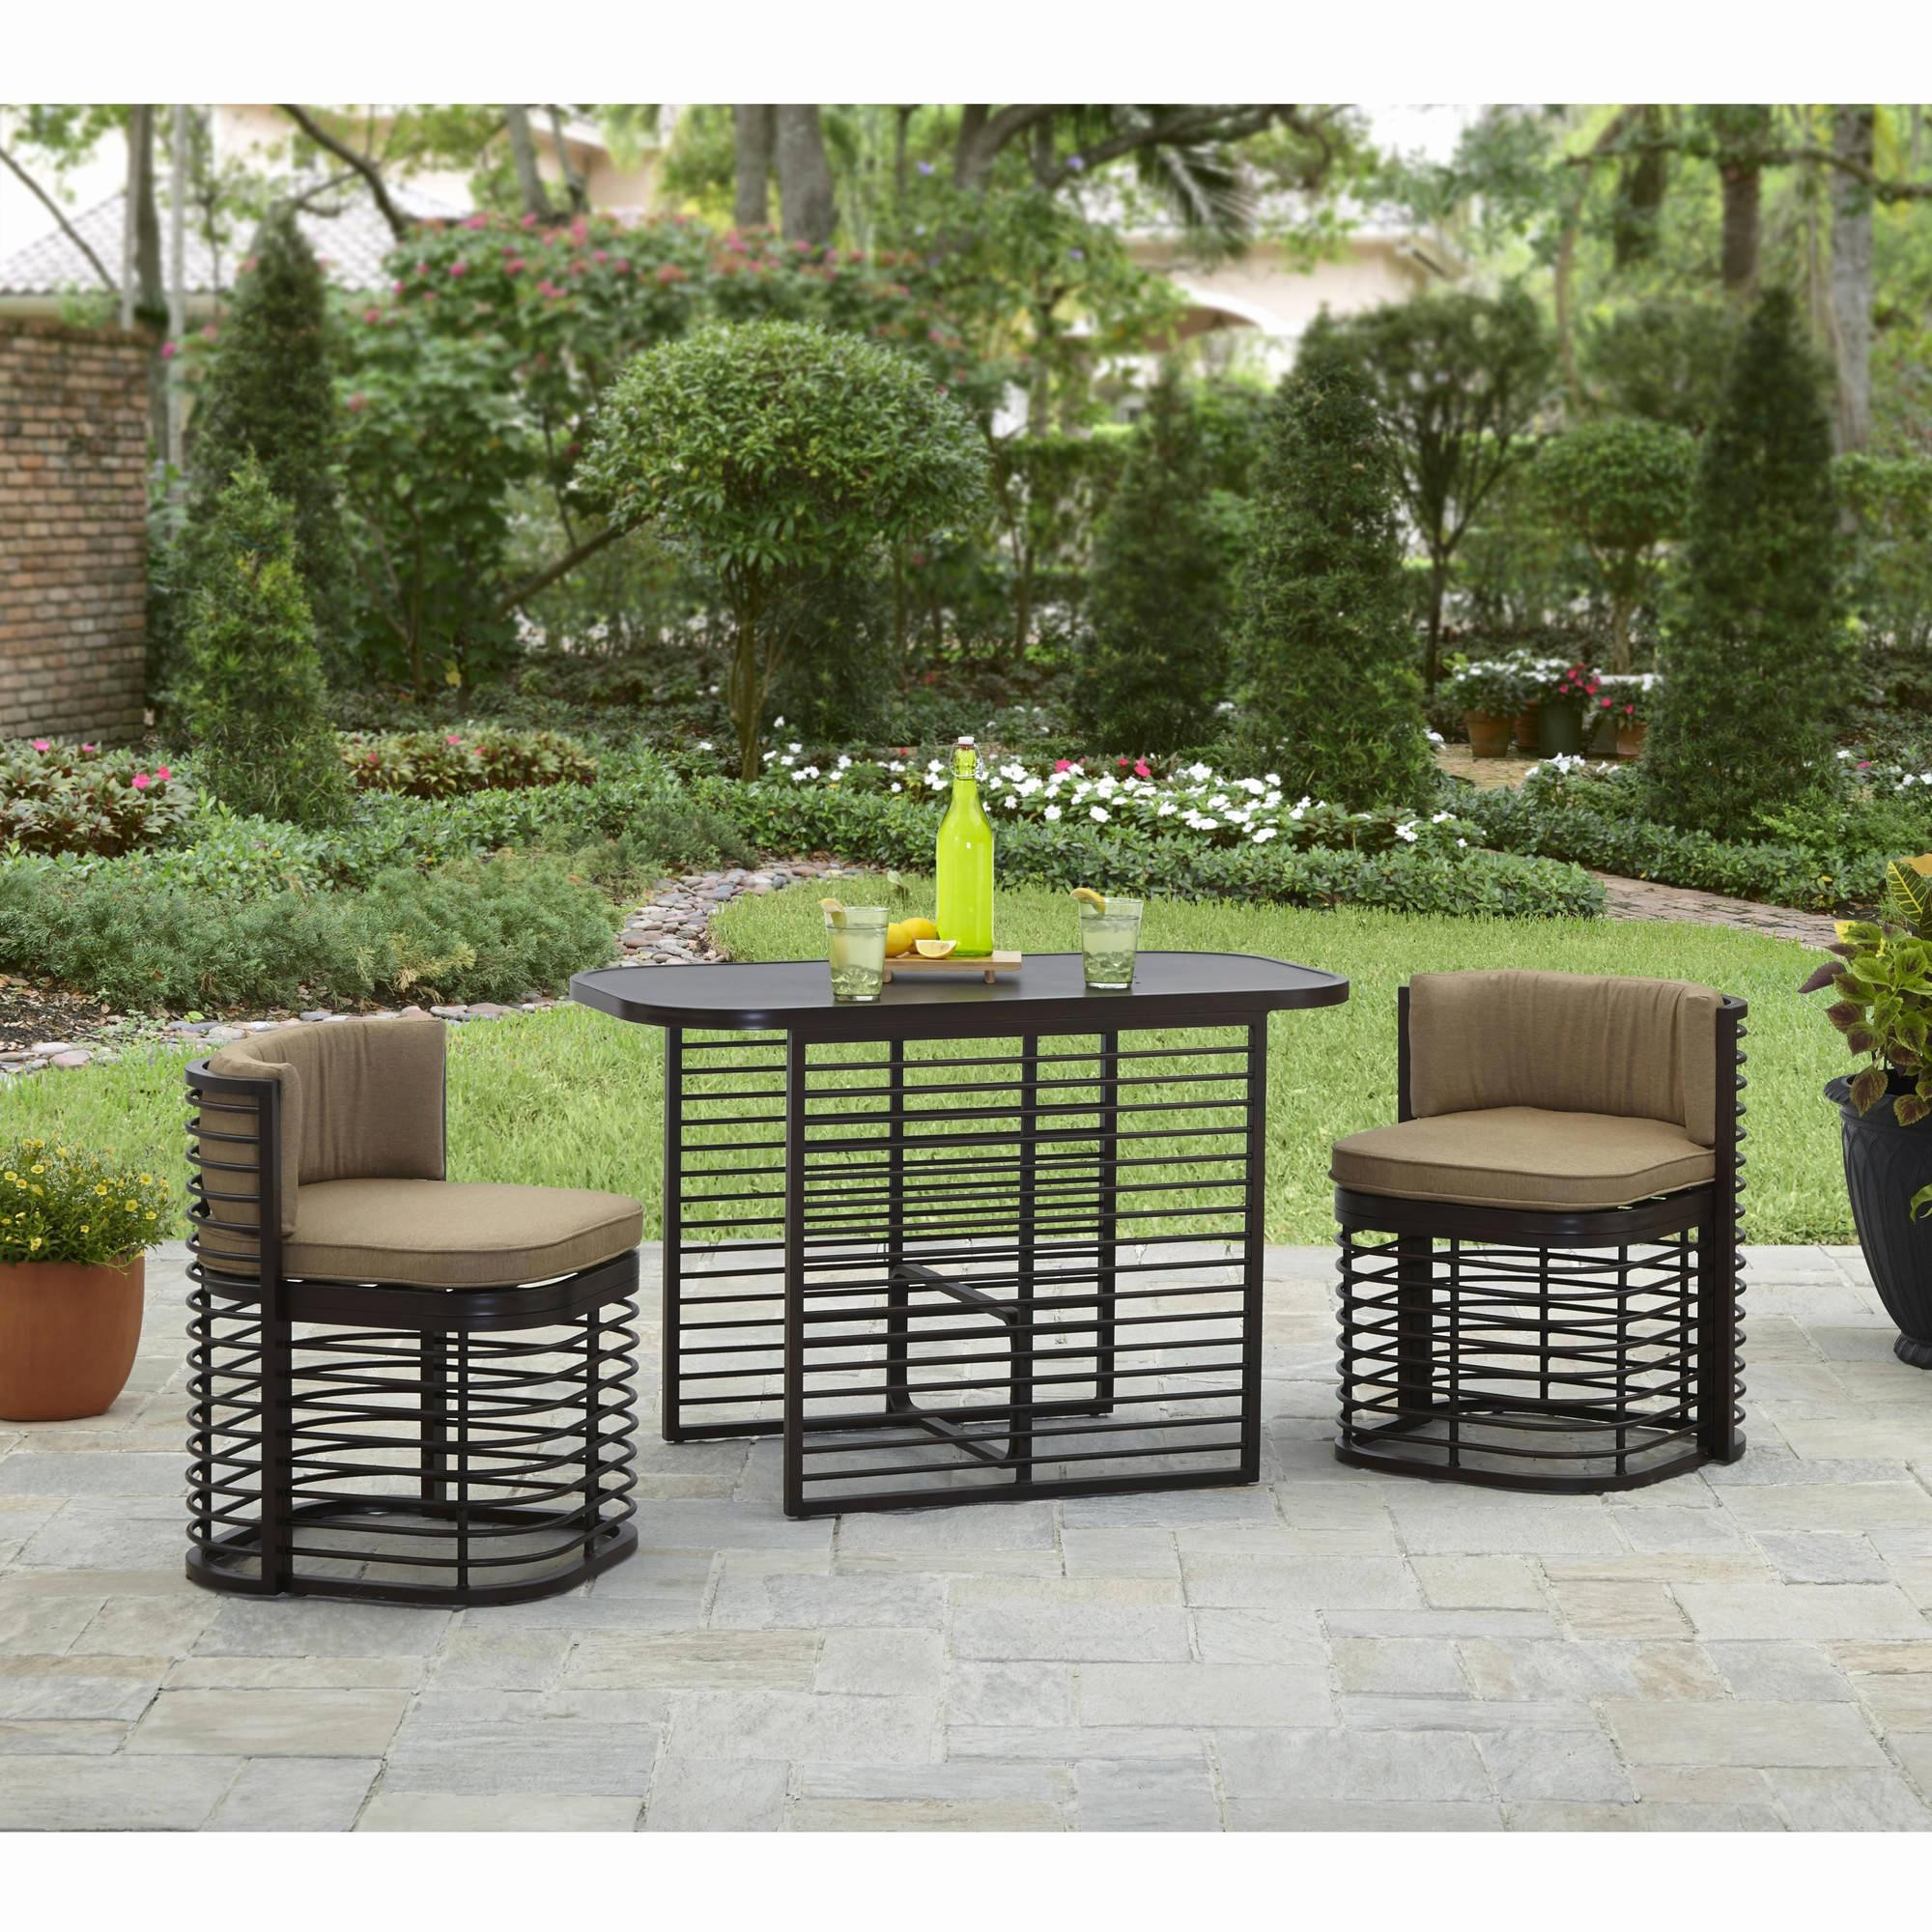 Best ideas about Wrought Iron Patio Furniture Lowes . Save or Pin Wrought Iron Patio Furniture Lowes Modern Outdoor Ideas Now.